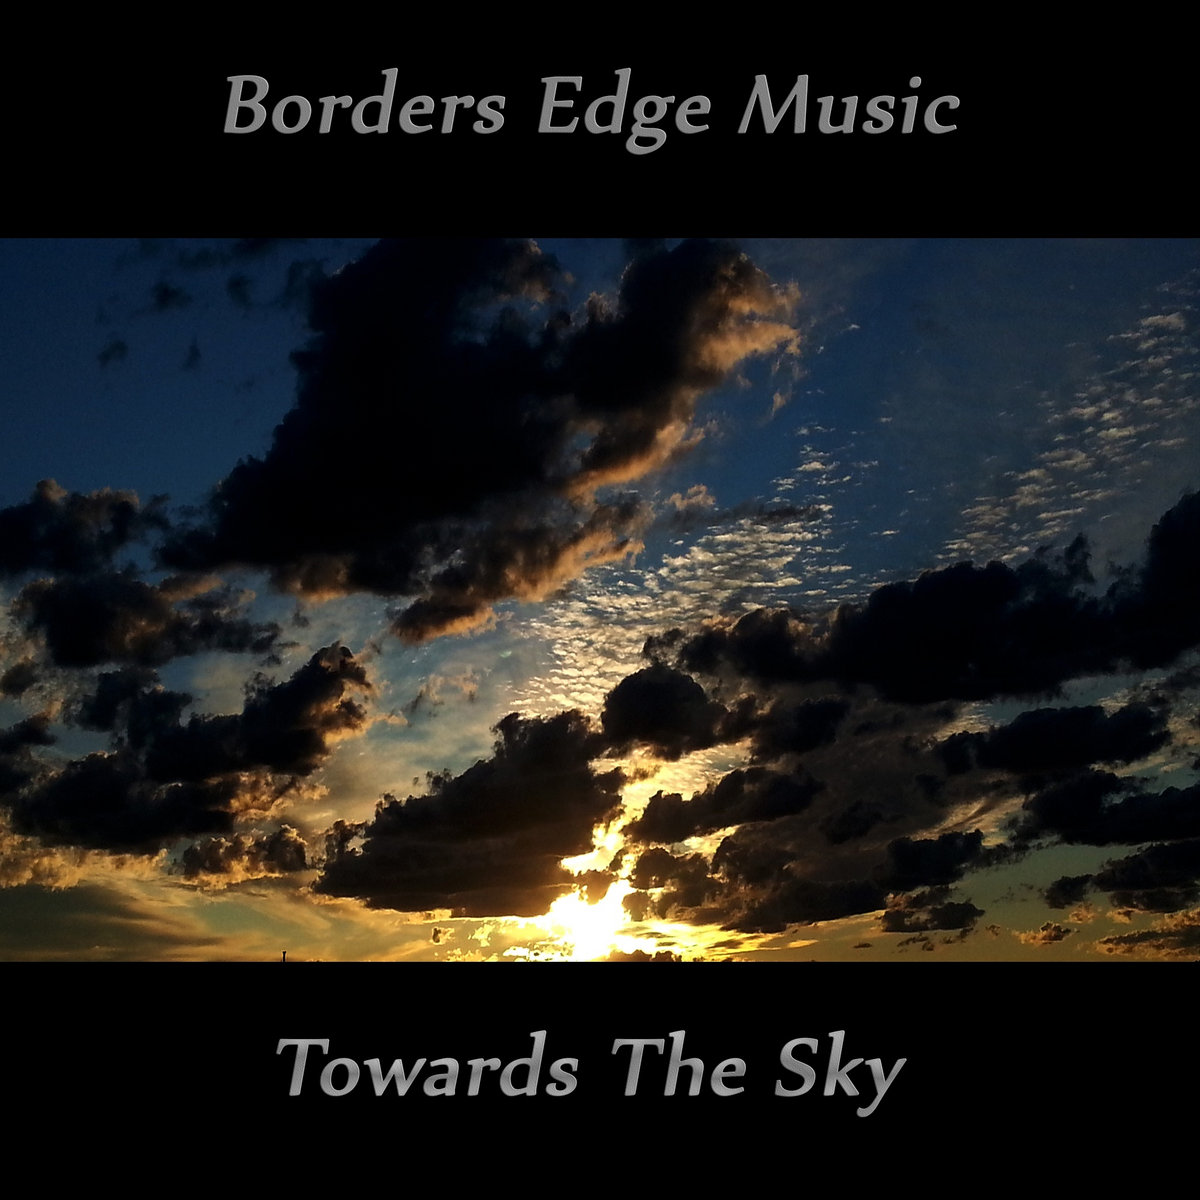 https://bordersedge.bandcamp.com/album/towards-the-sky